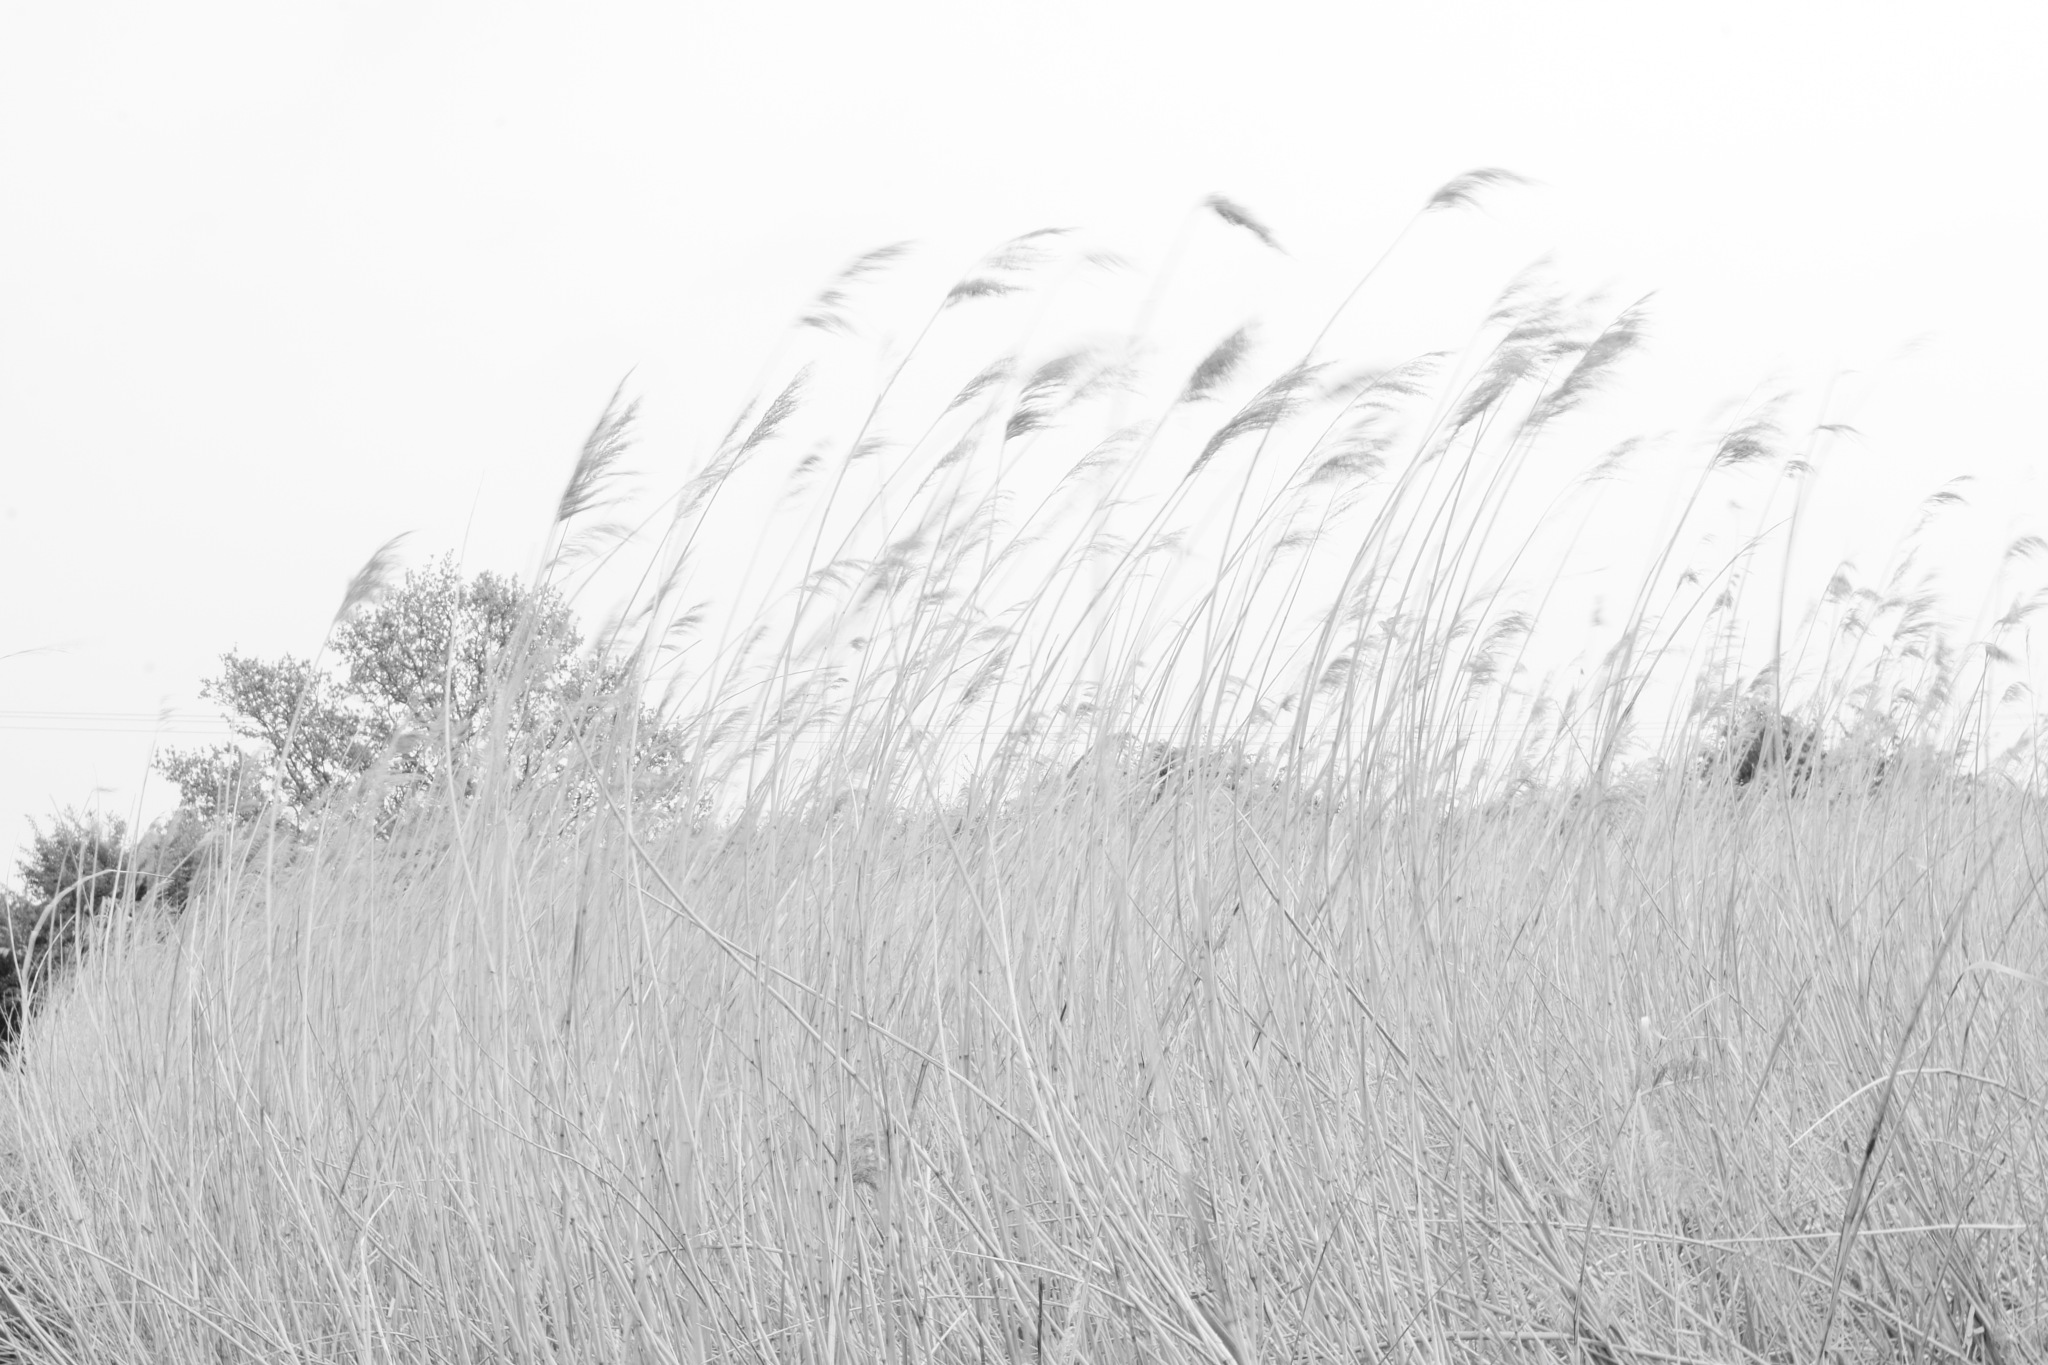 wiNd gRaSS by Ian Alastair Trenor Photography